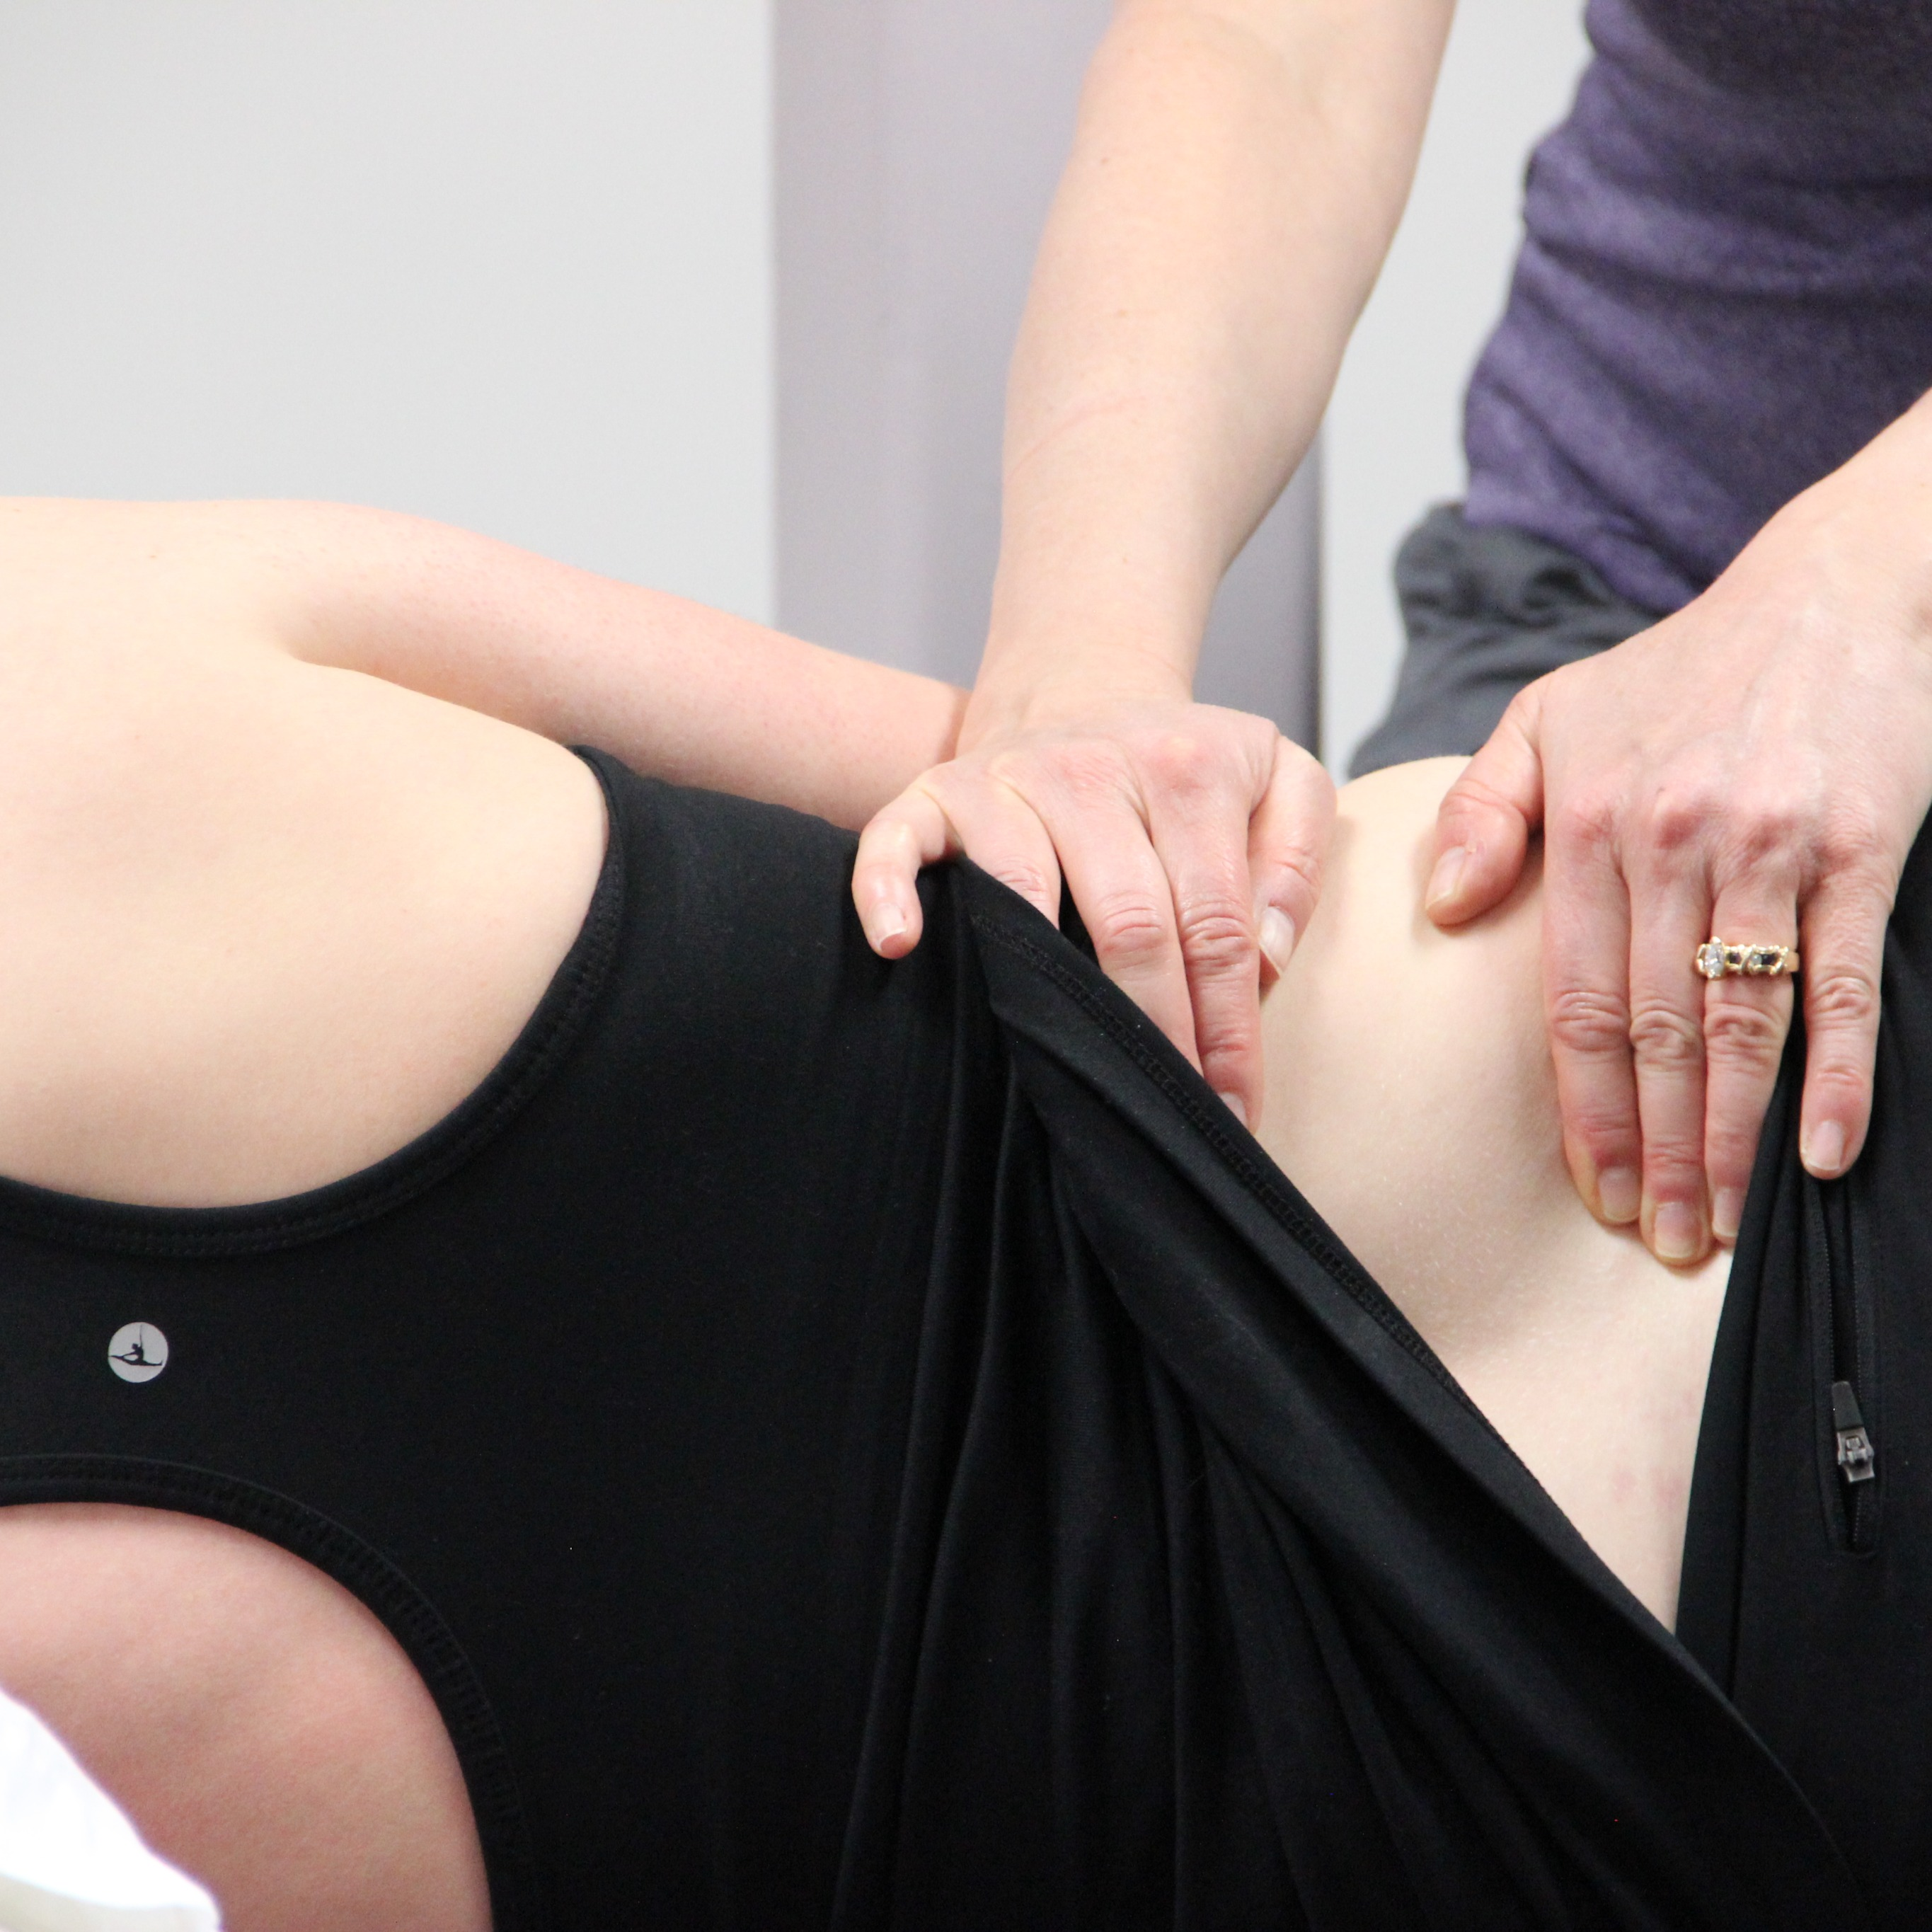 Clegg & Guest Physical Therapy Image